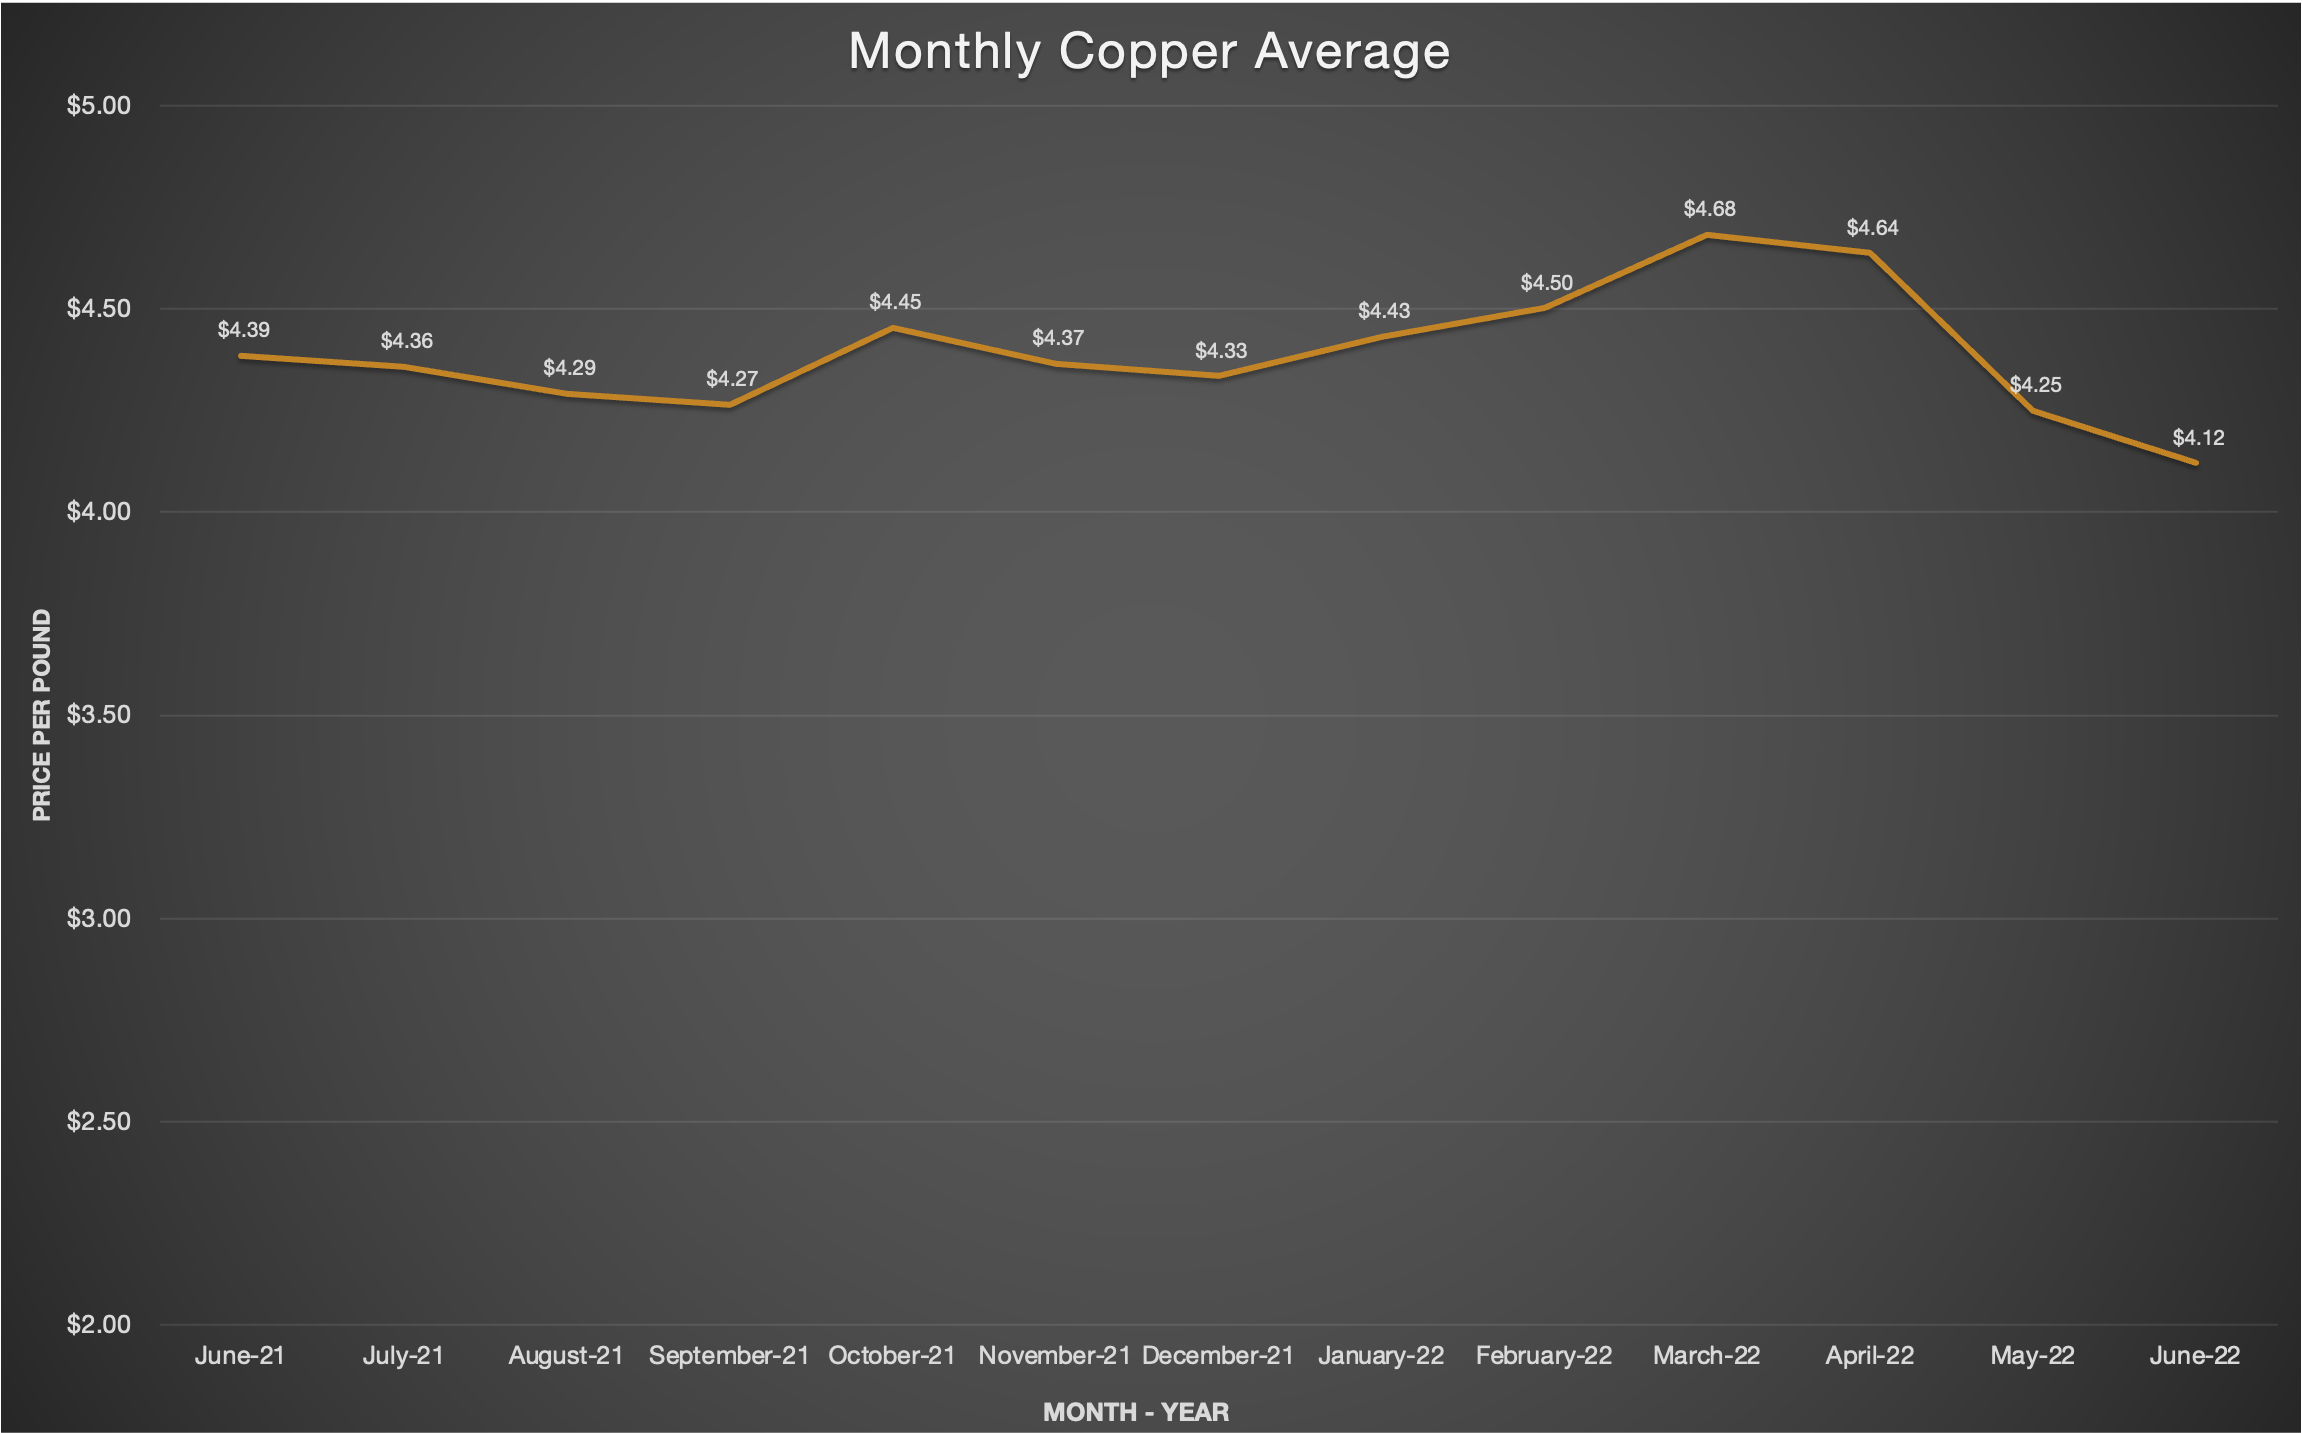 Monthly Copper Average